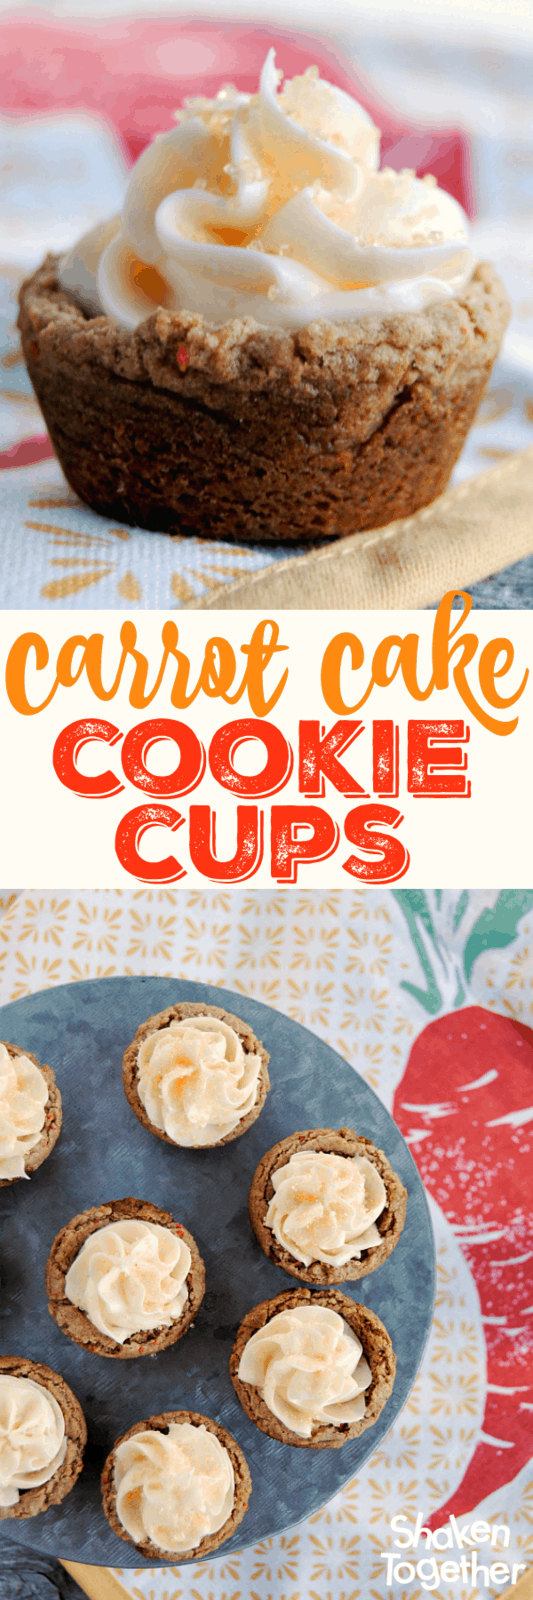 Busy bakers, I have the recipe for you! Carrot Cake Cookie Cups! They start with a cake mix, so these two-bite treats couldn't be easier!